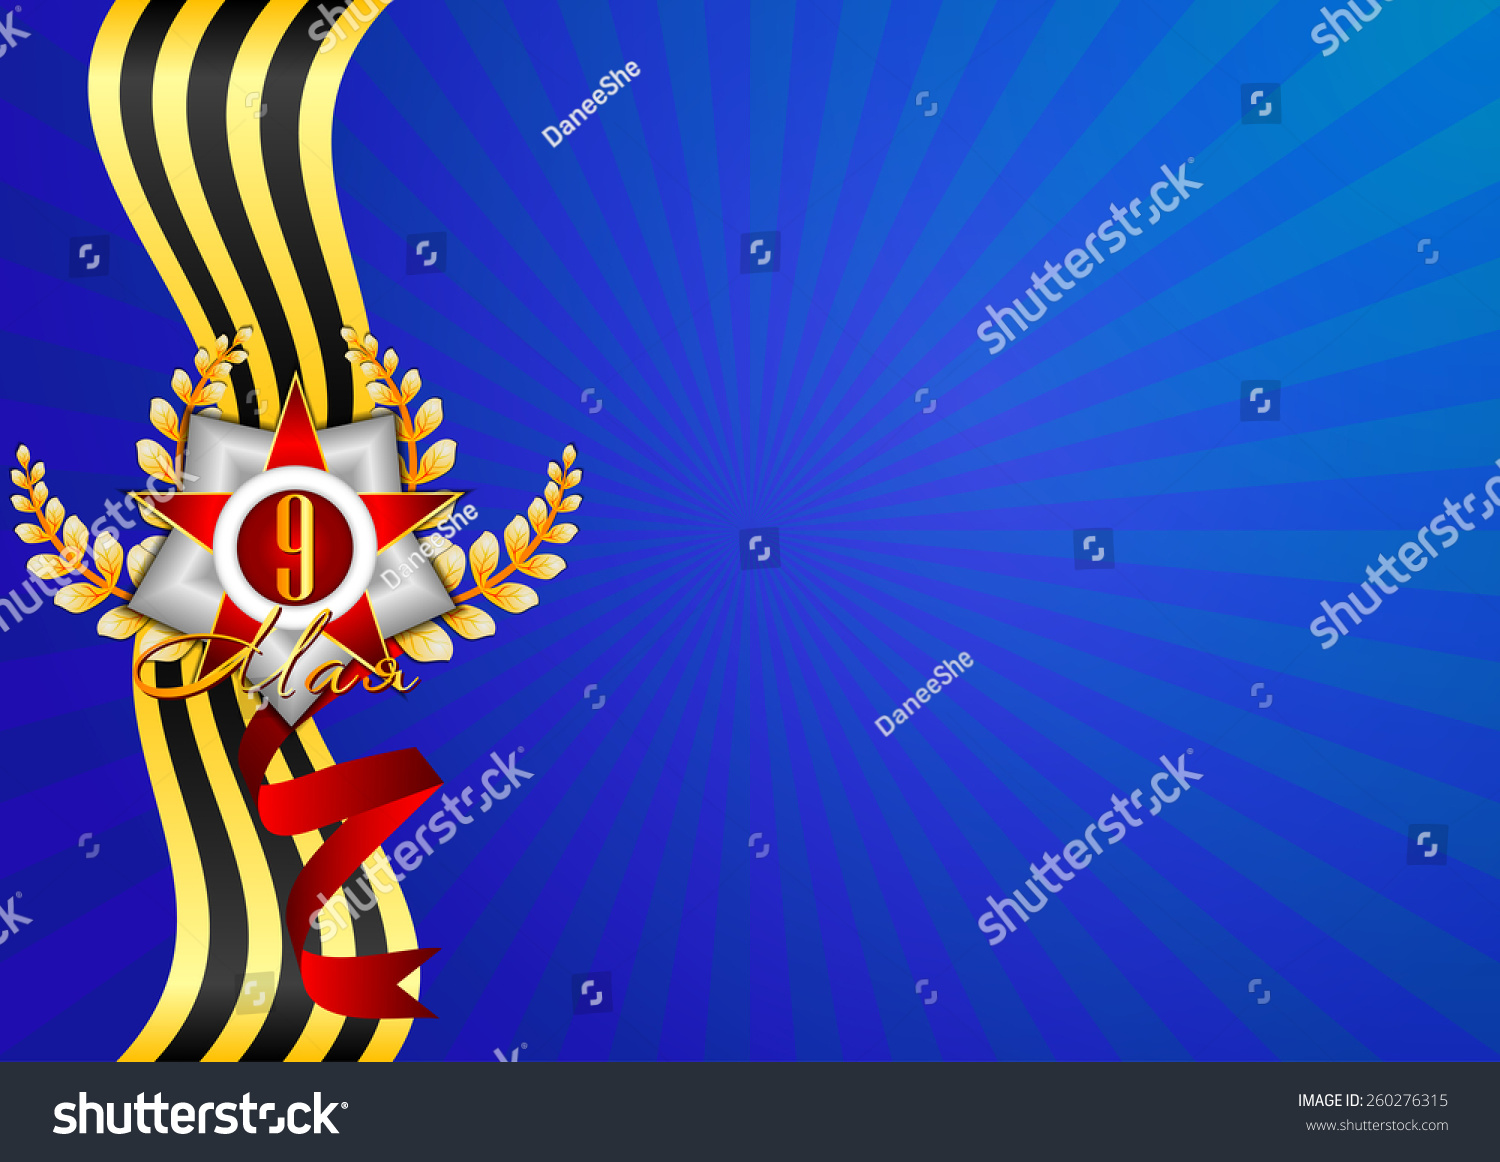 Holiday background in blue with georgievsky ribbon and star with date